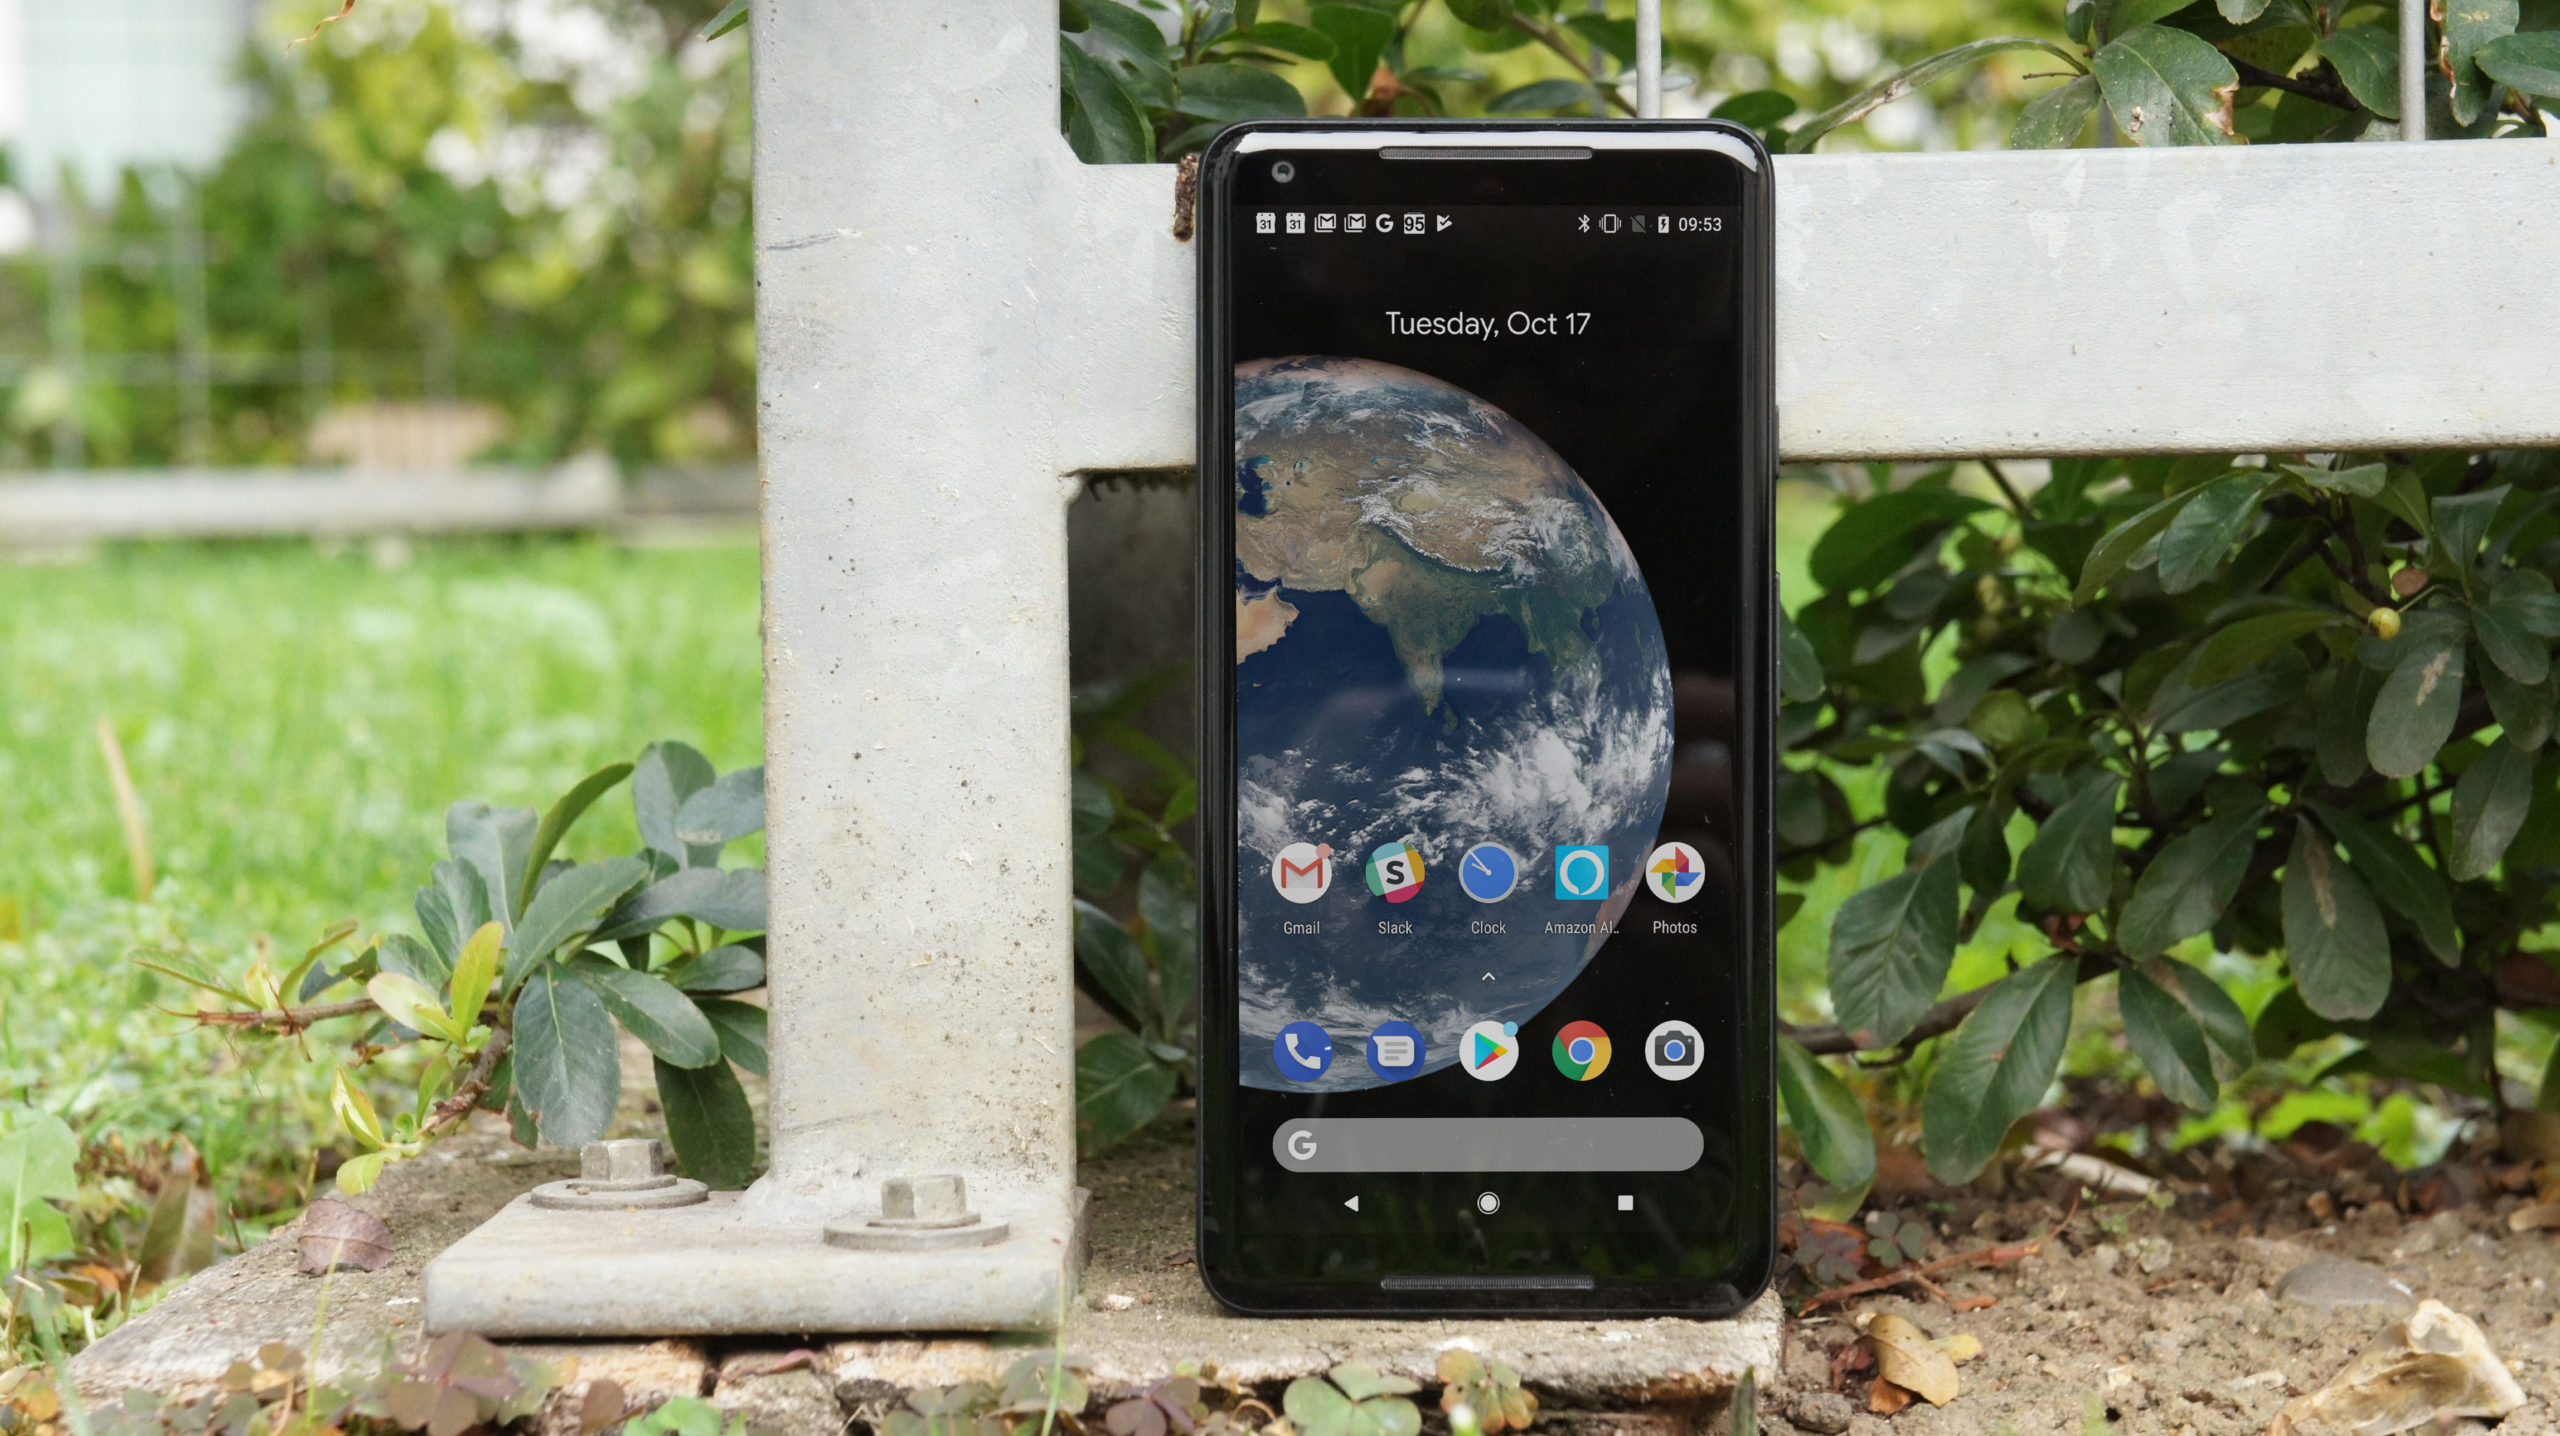 Google Pixel 2 Xl Review This One Contract Trick Will Bag You Google S Phablet For 662